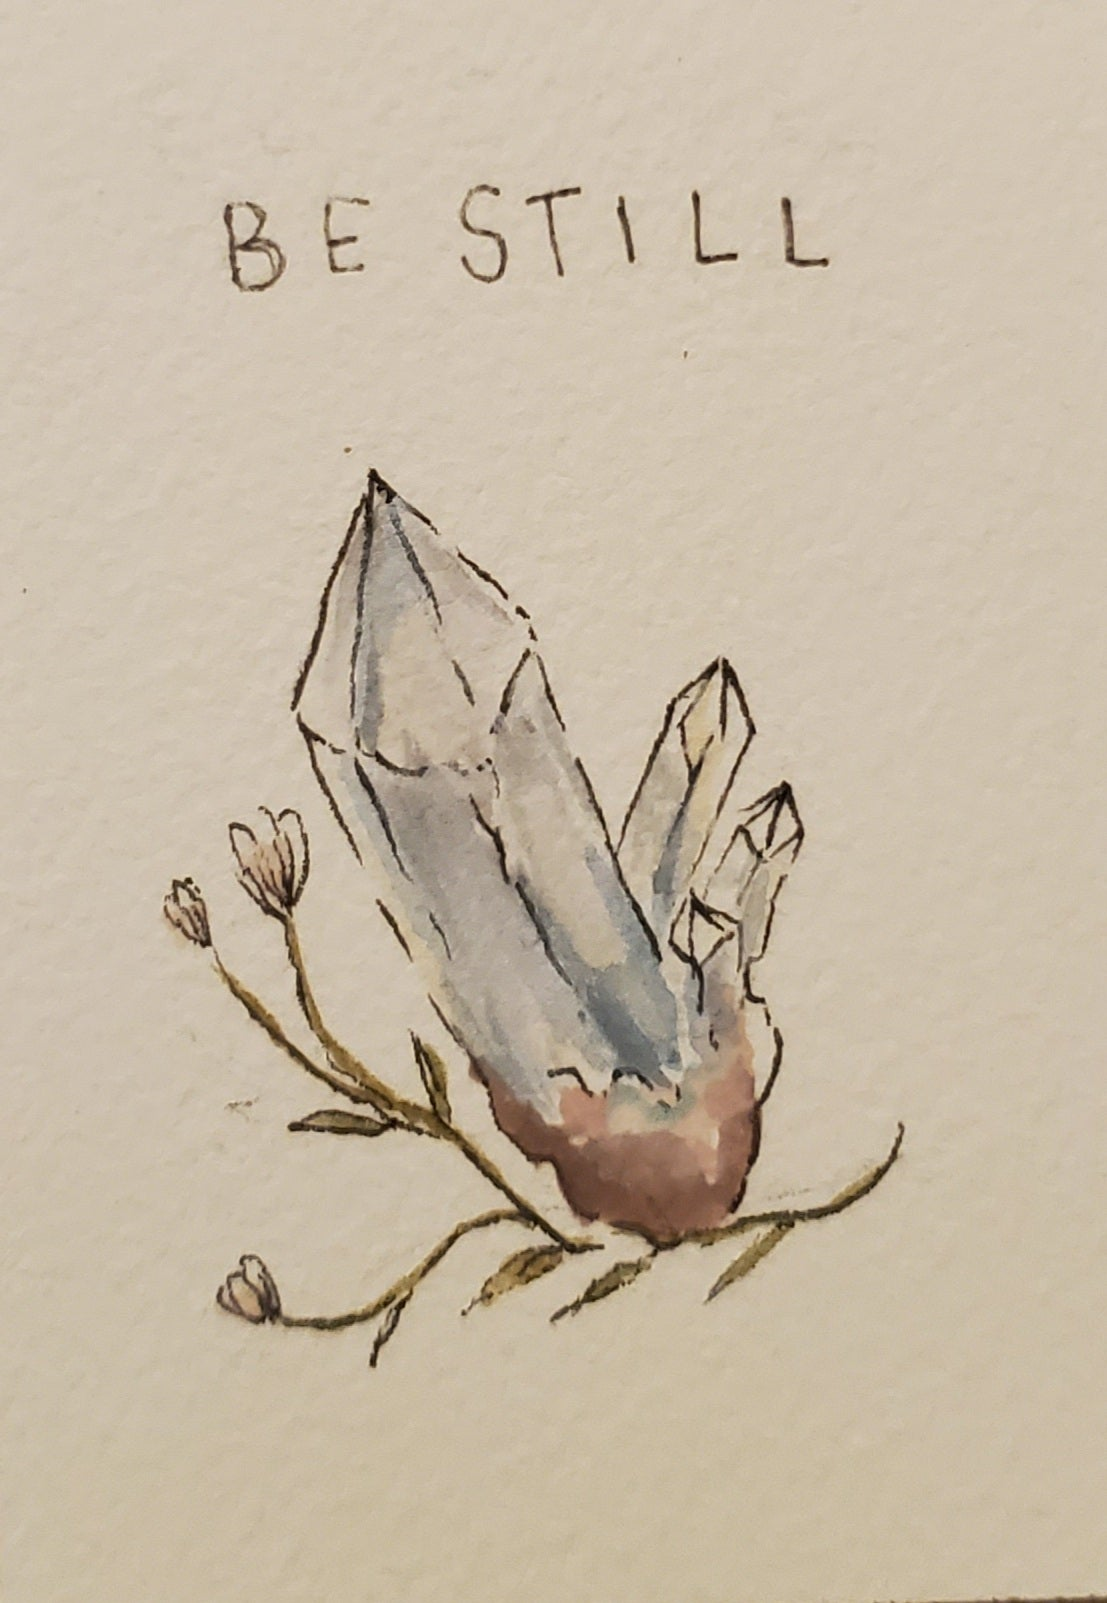 Image of Be soft. Be silent. Be still